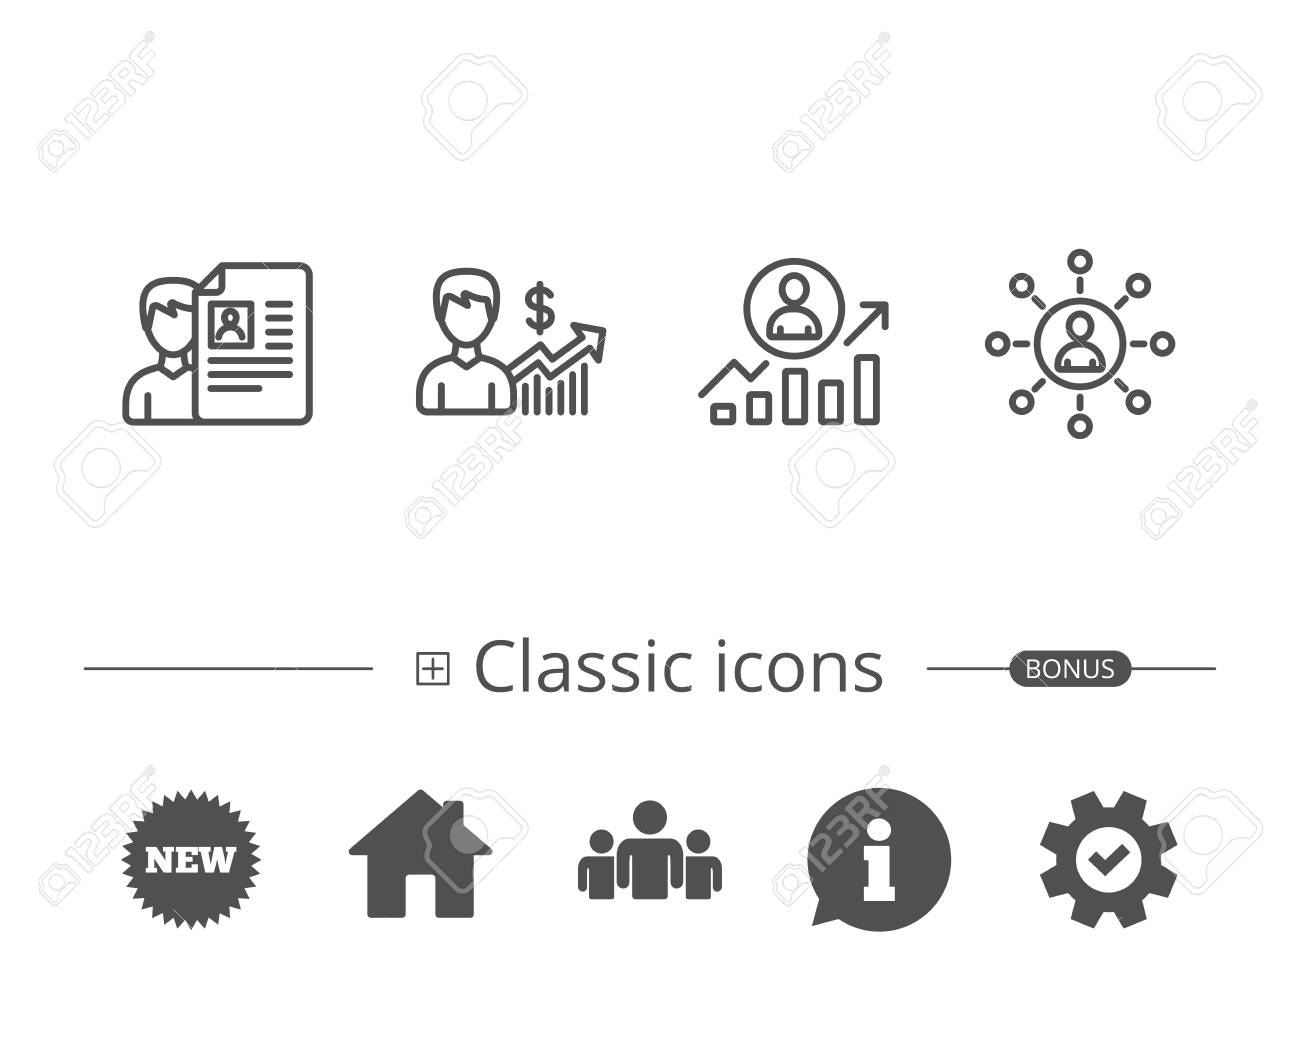 cv business networking and get a job line icons work results and growth chart